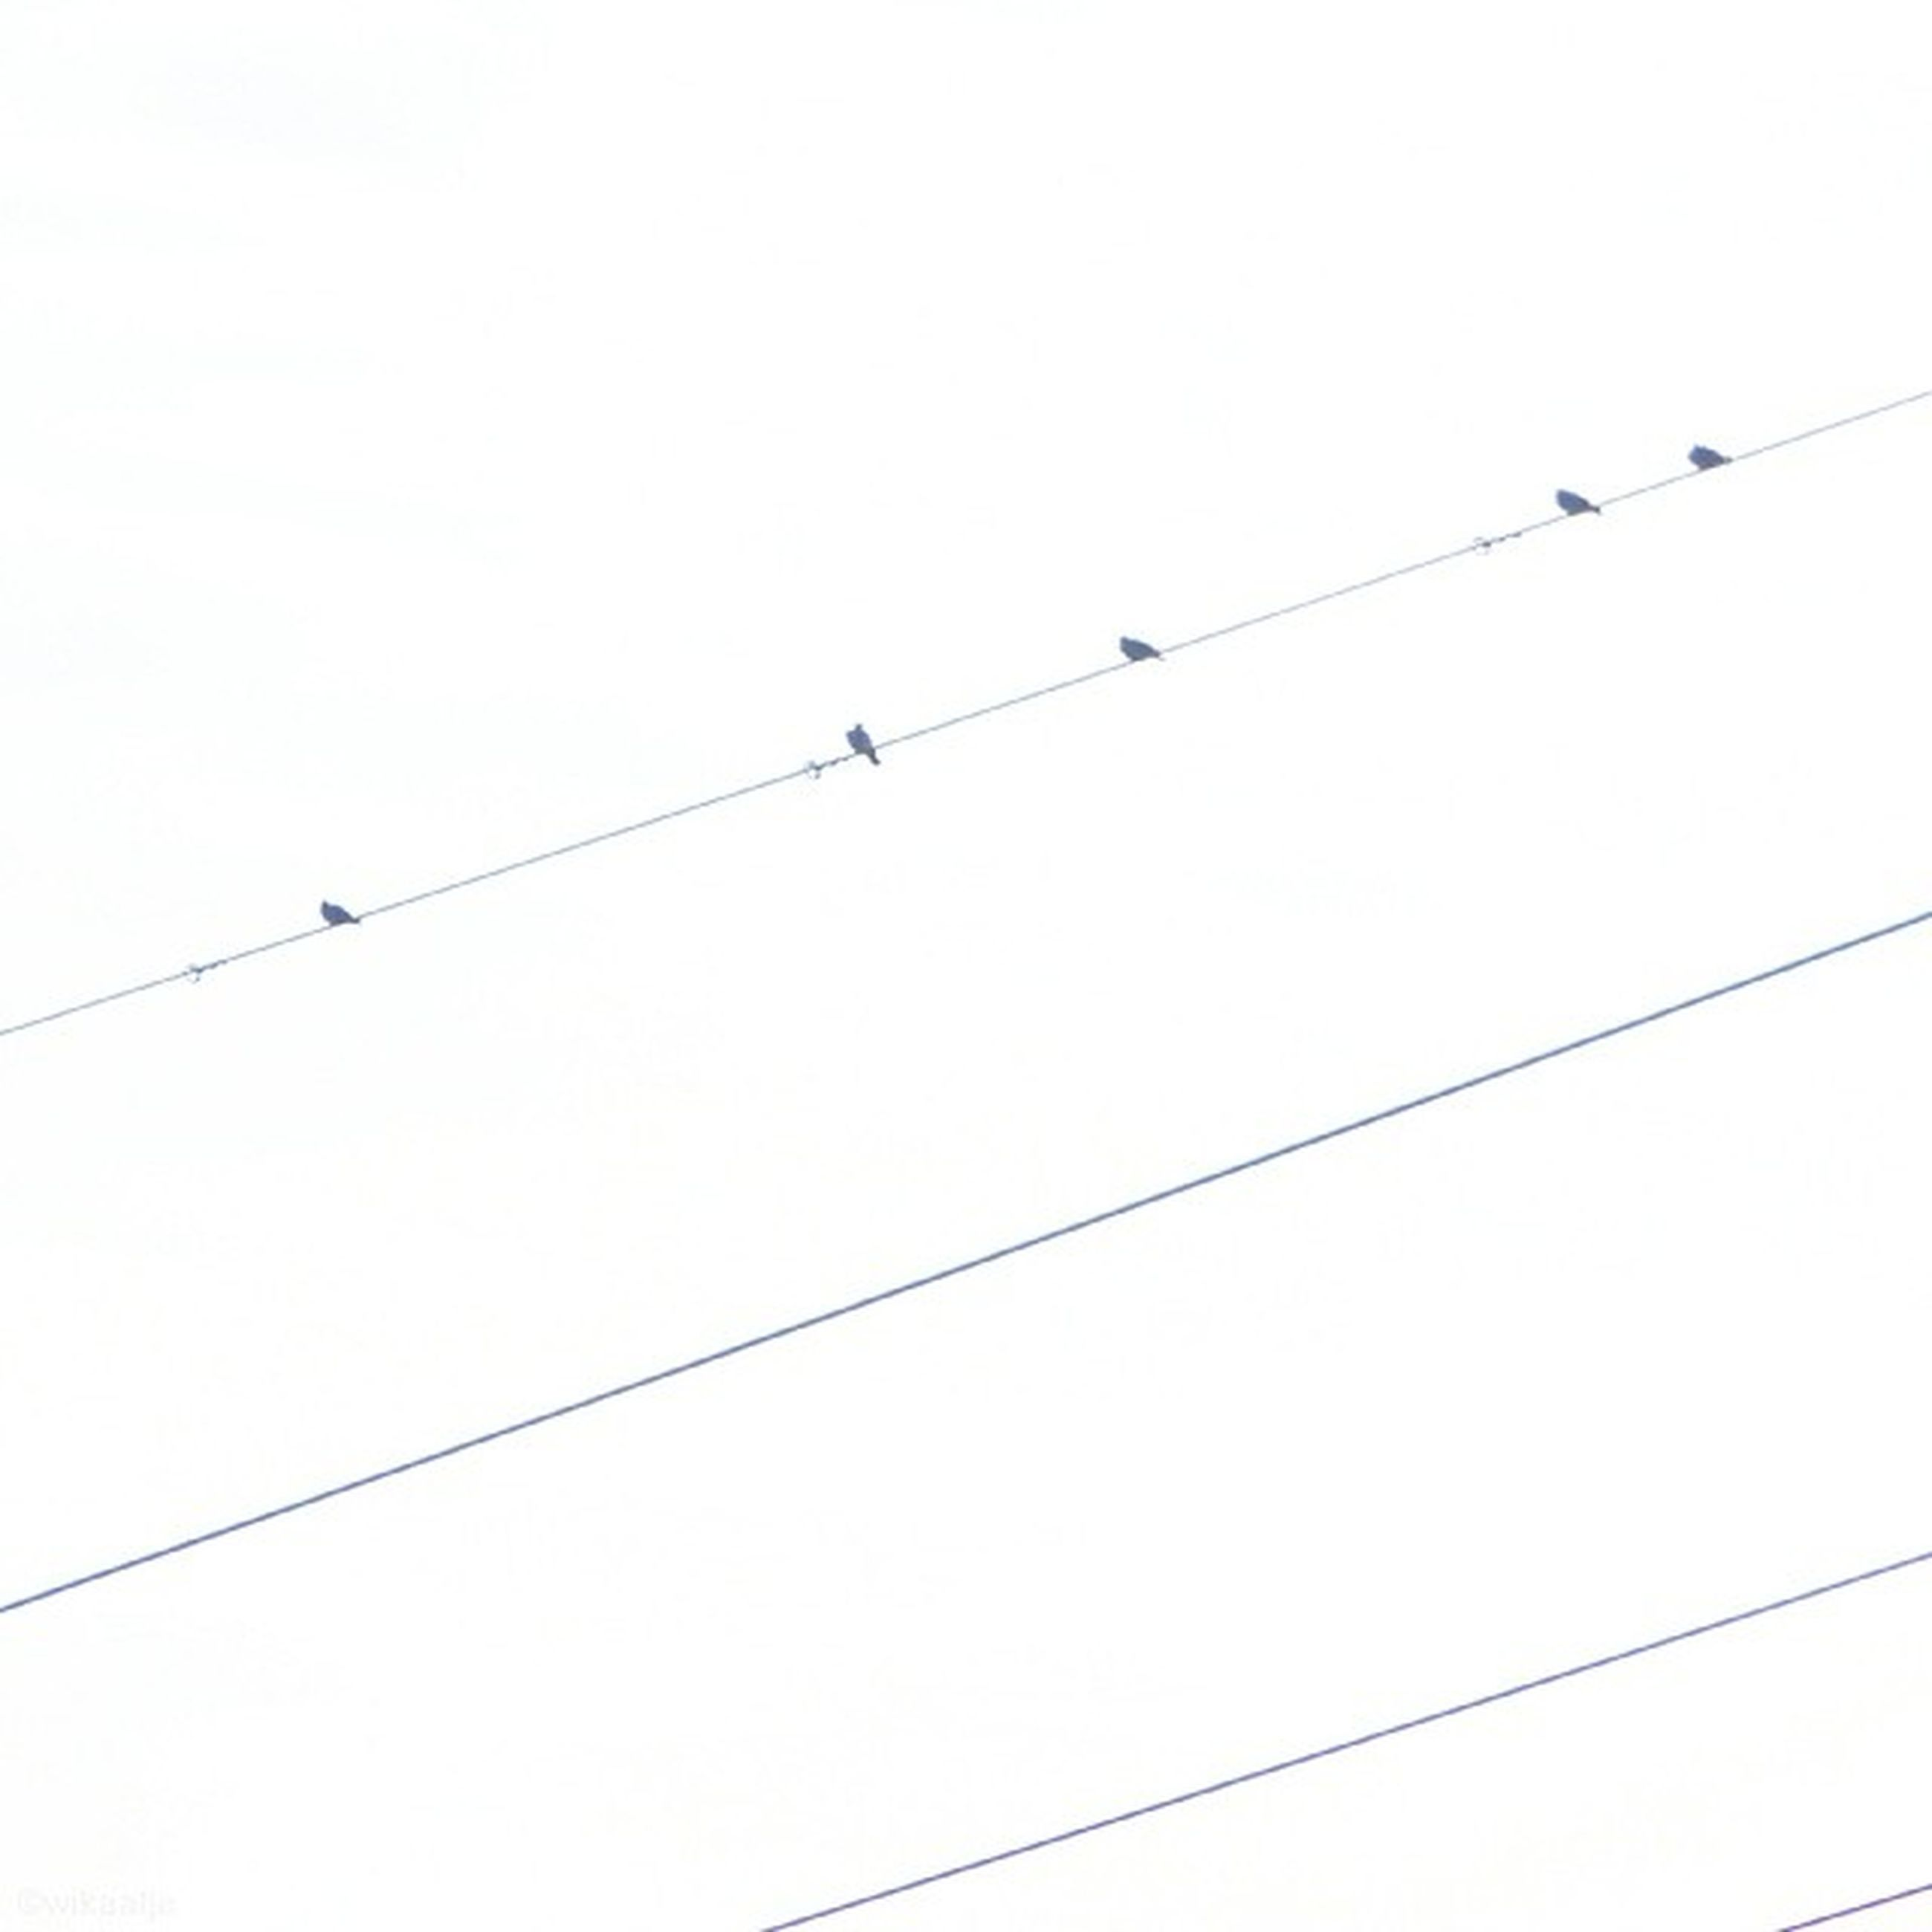 bird, animal themes, low angle view, animals in the wild, wildlife, clear sky, cable, power line, perching, copy space, connection, flying, electricity, silhouette, power supply, power cable, flock of birds, sky, outdoors